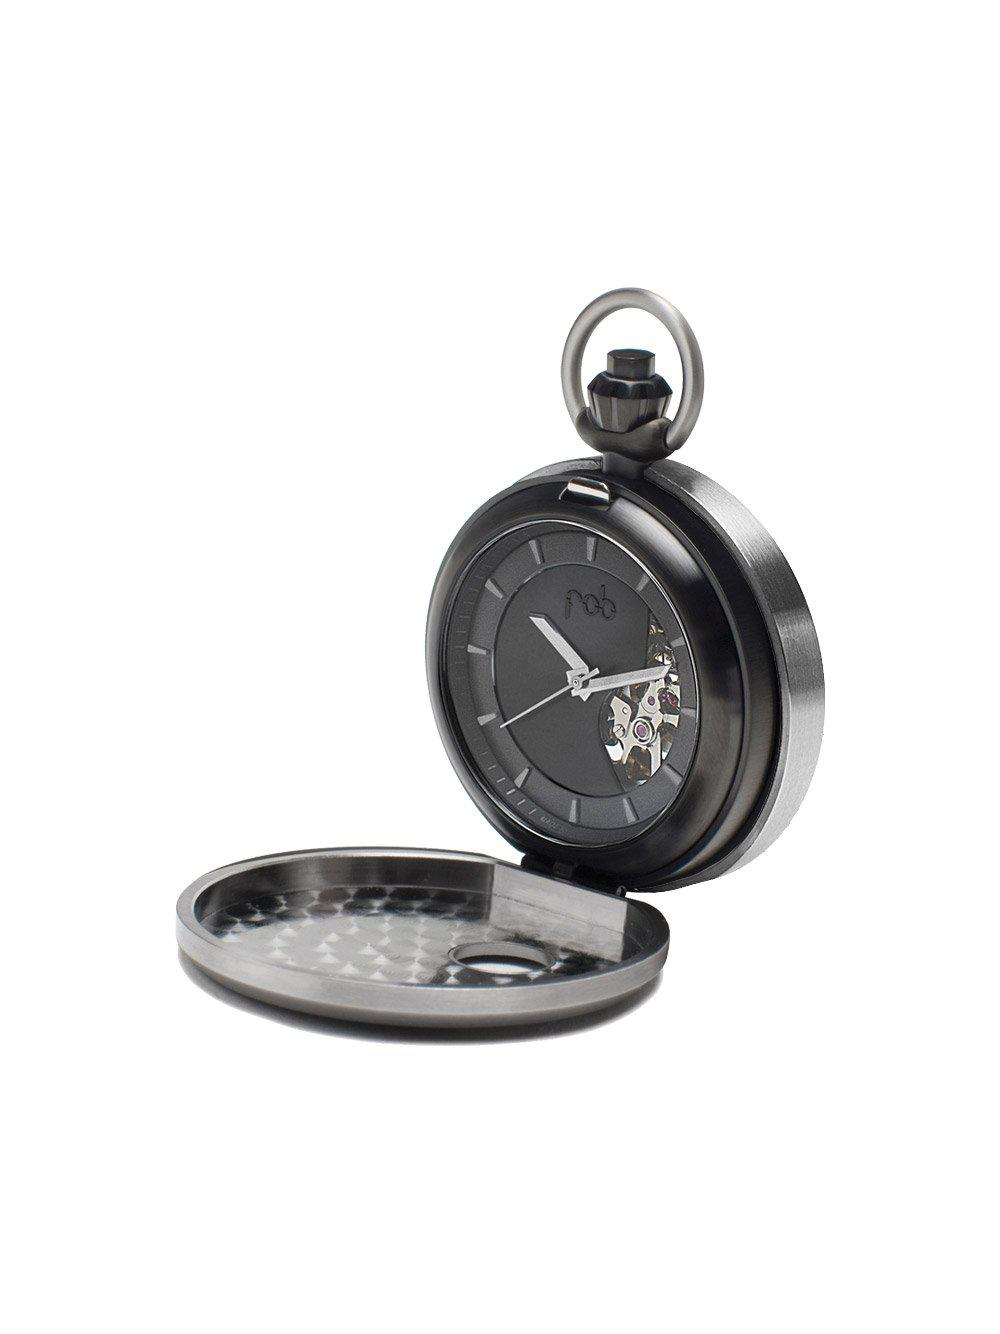 Legacy Pocket Watch - Watches - Fob - Elevastor